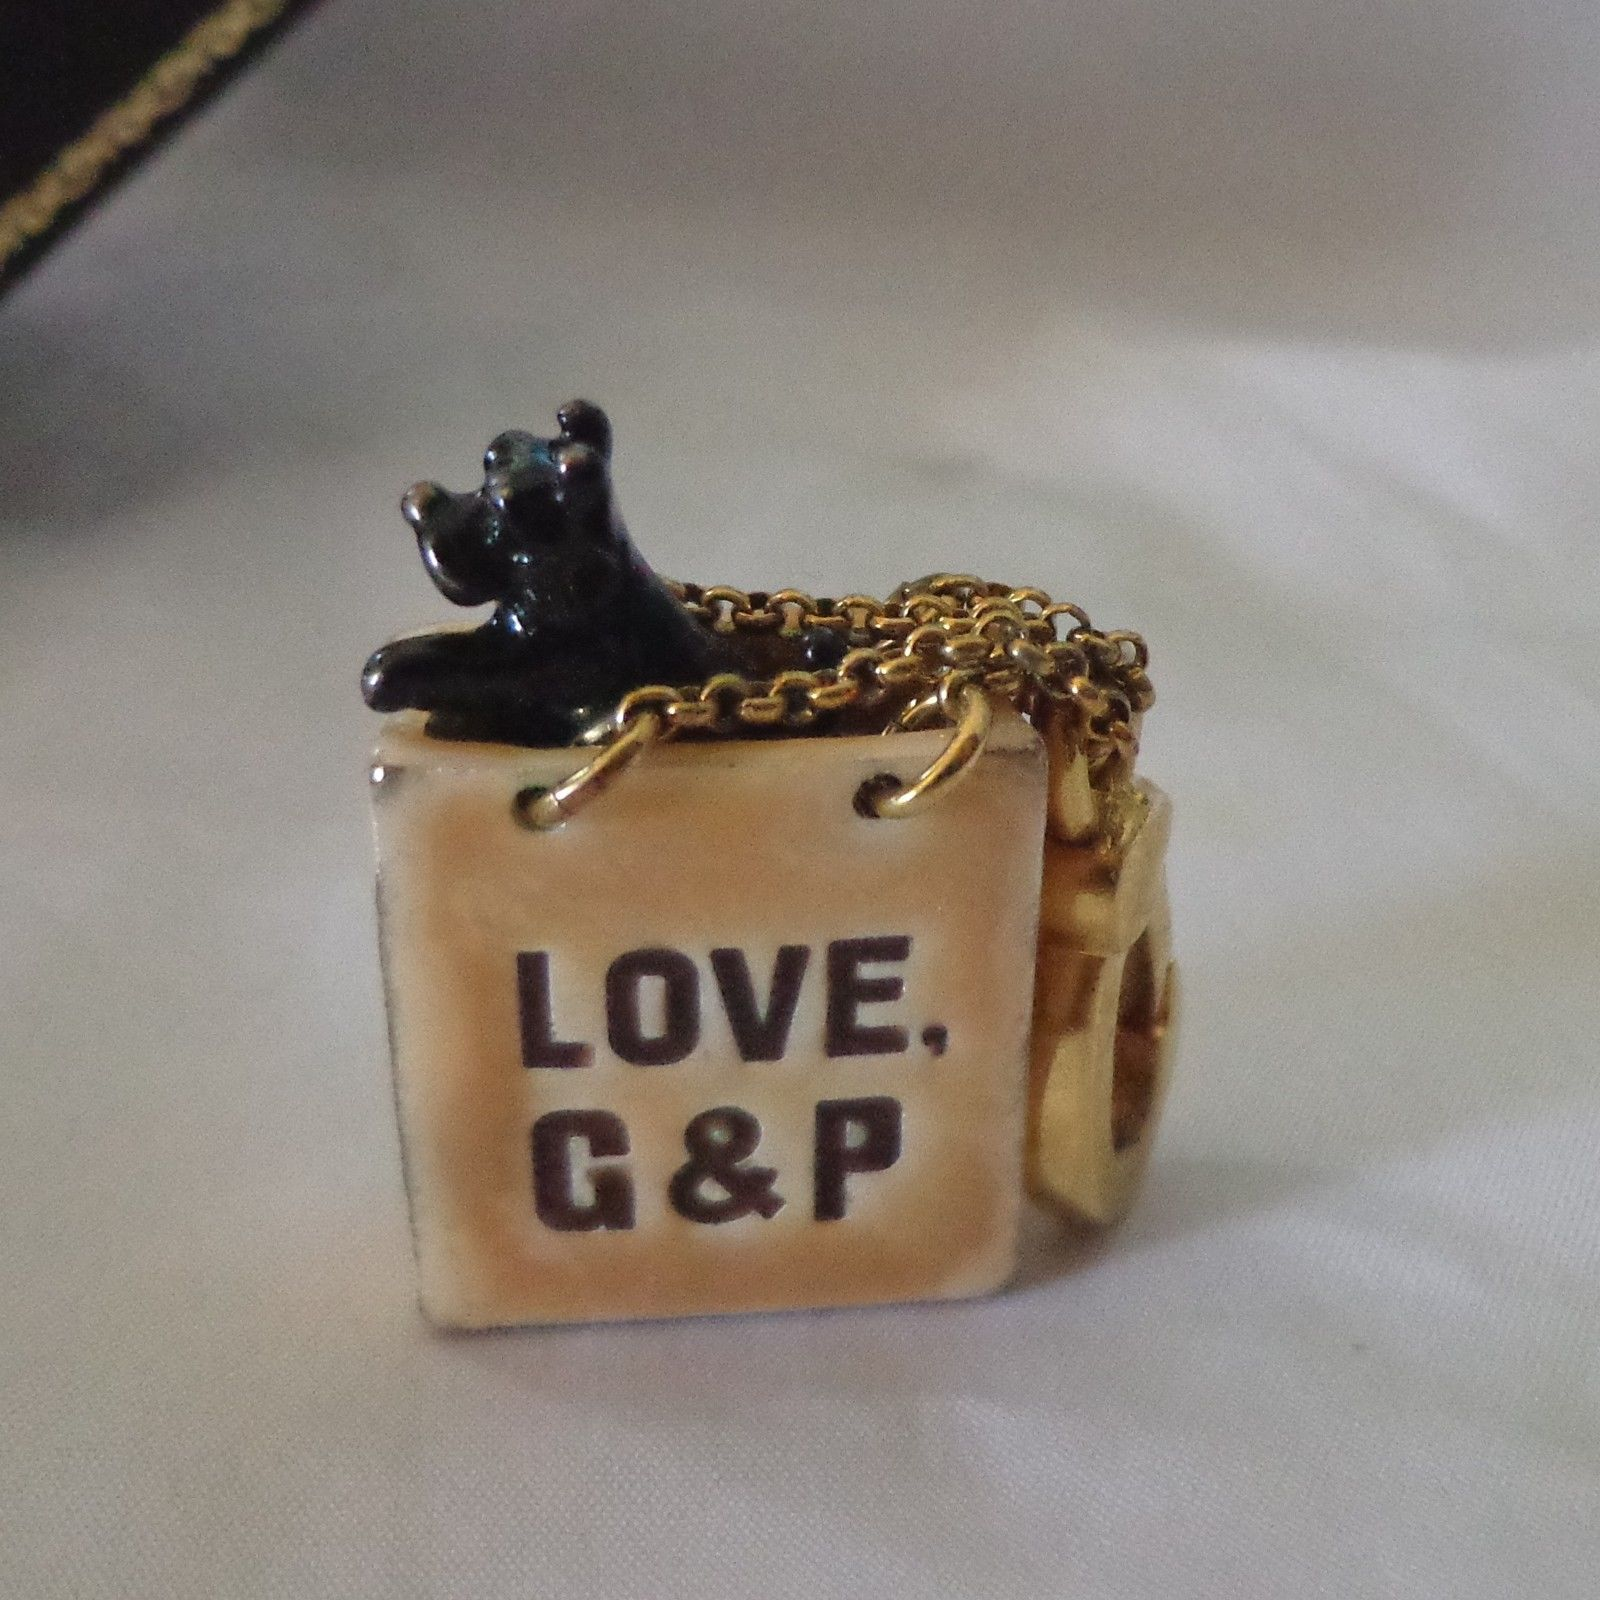 NIB - JUICY COUTURE Yorkie Dog in A Shopping Bag Charm - So Adorable